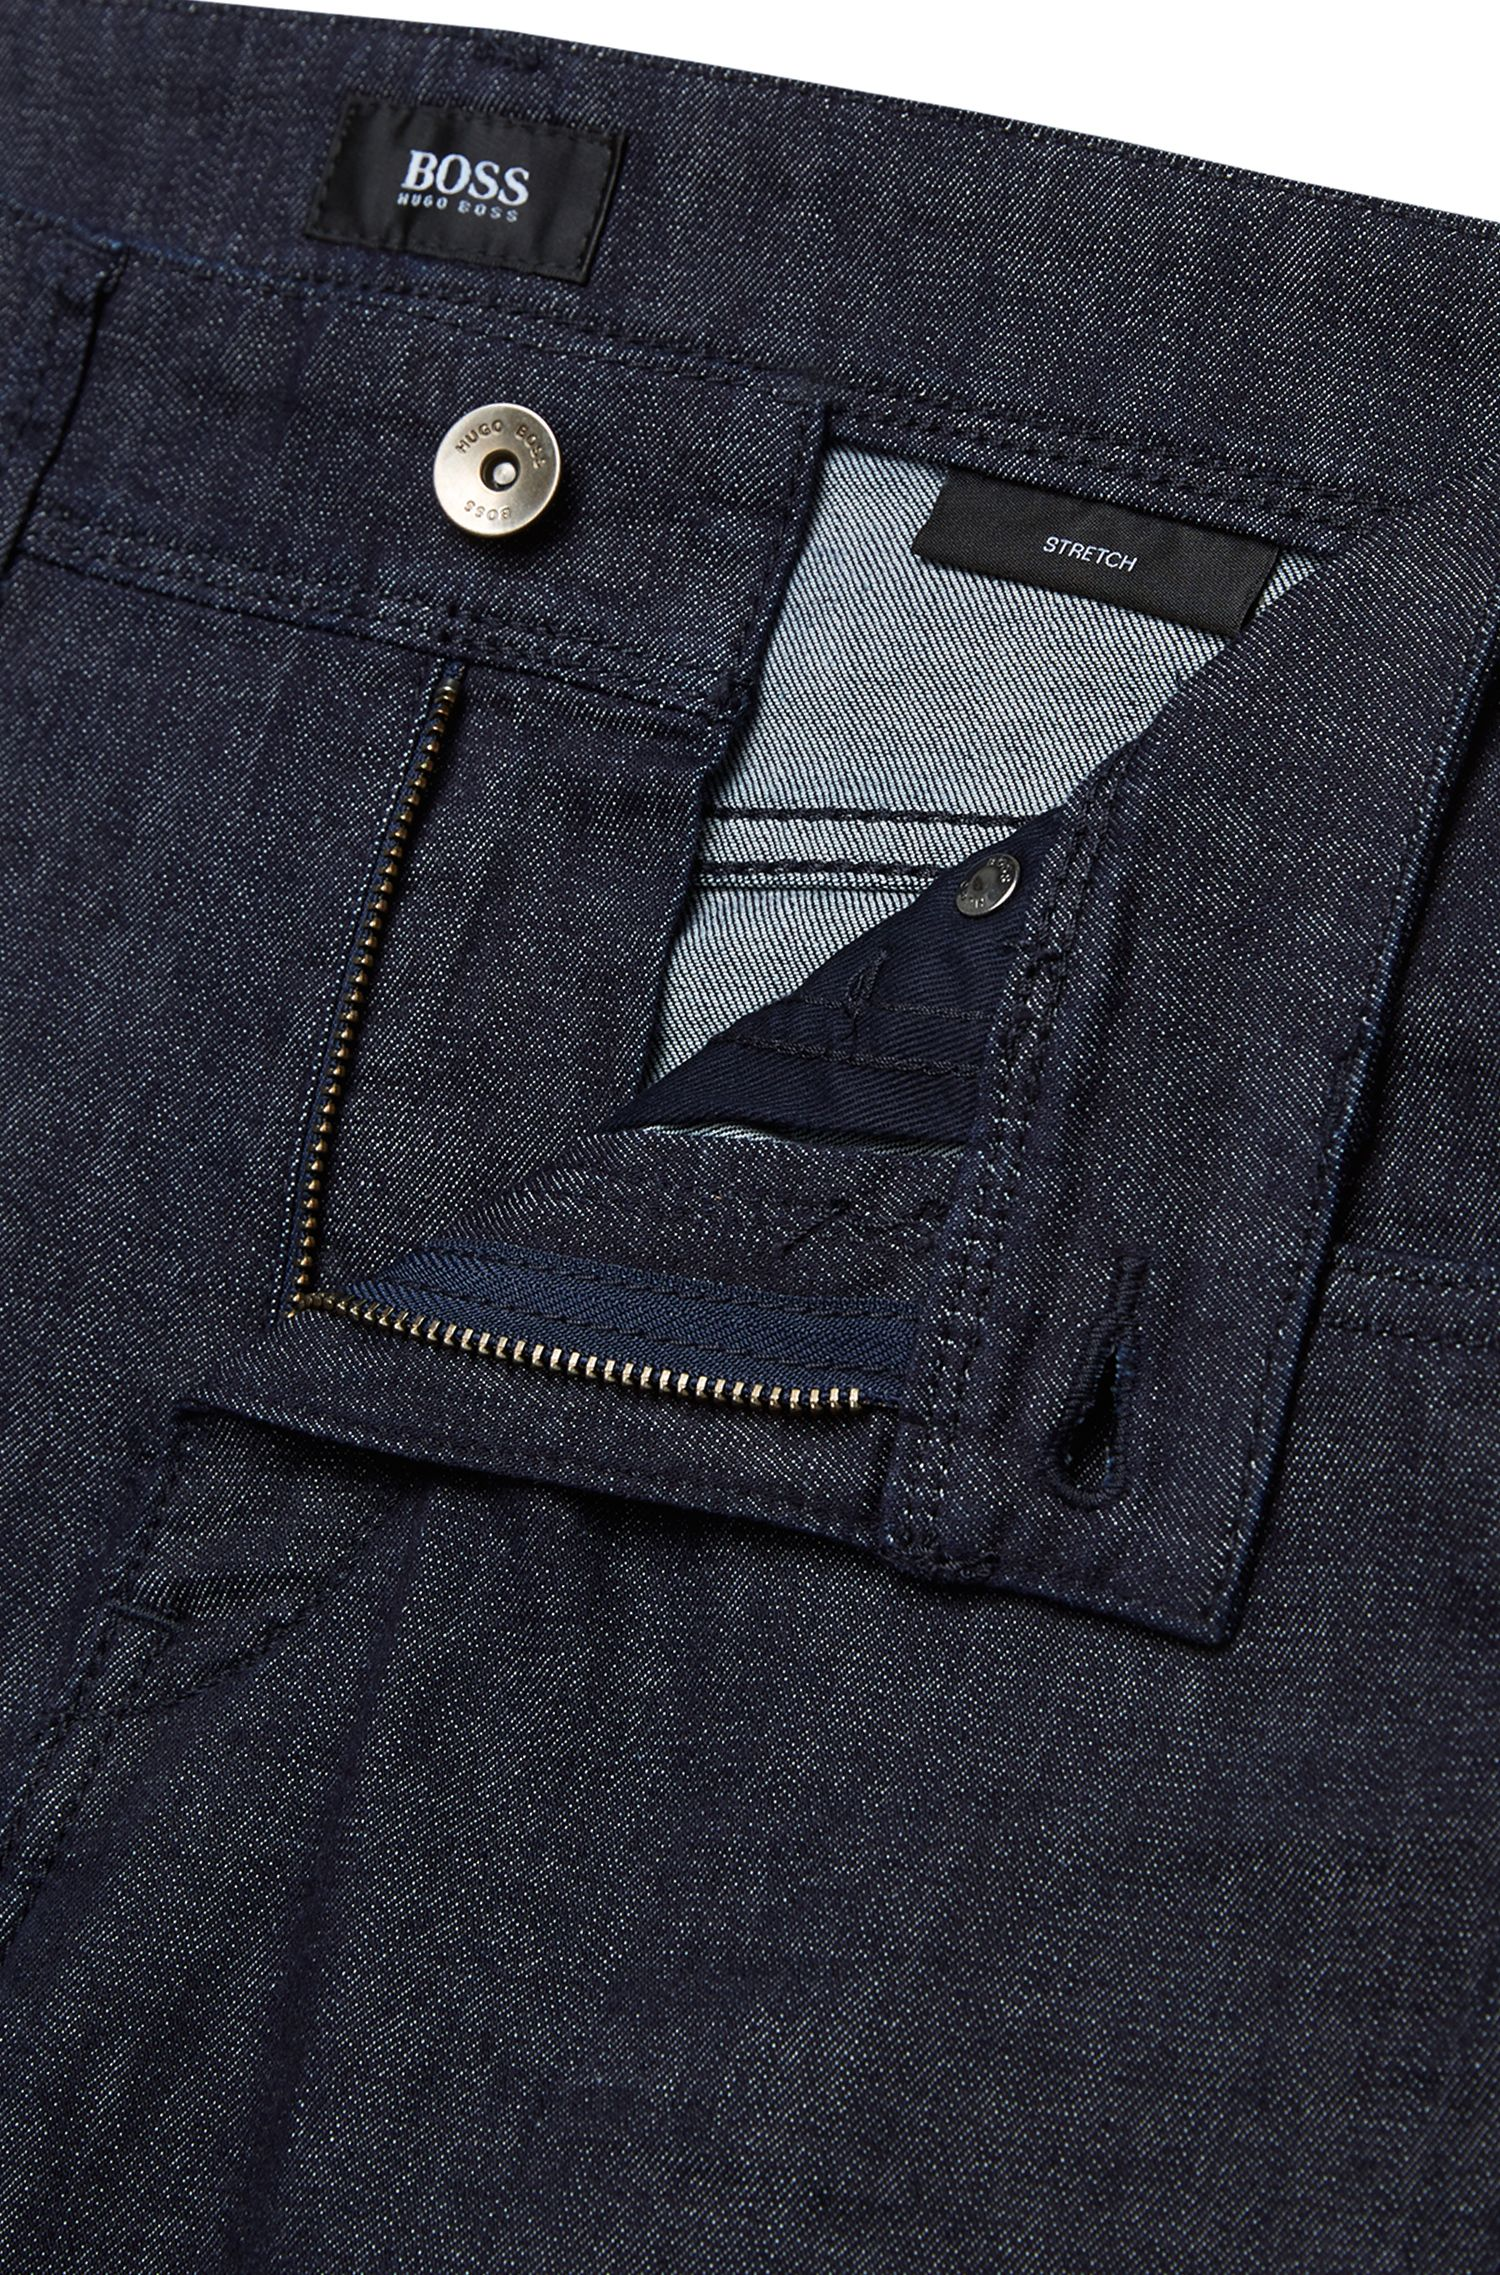 Jeans Slim Fit en coton stretch : « Charleston3 »